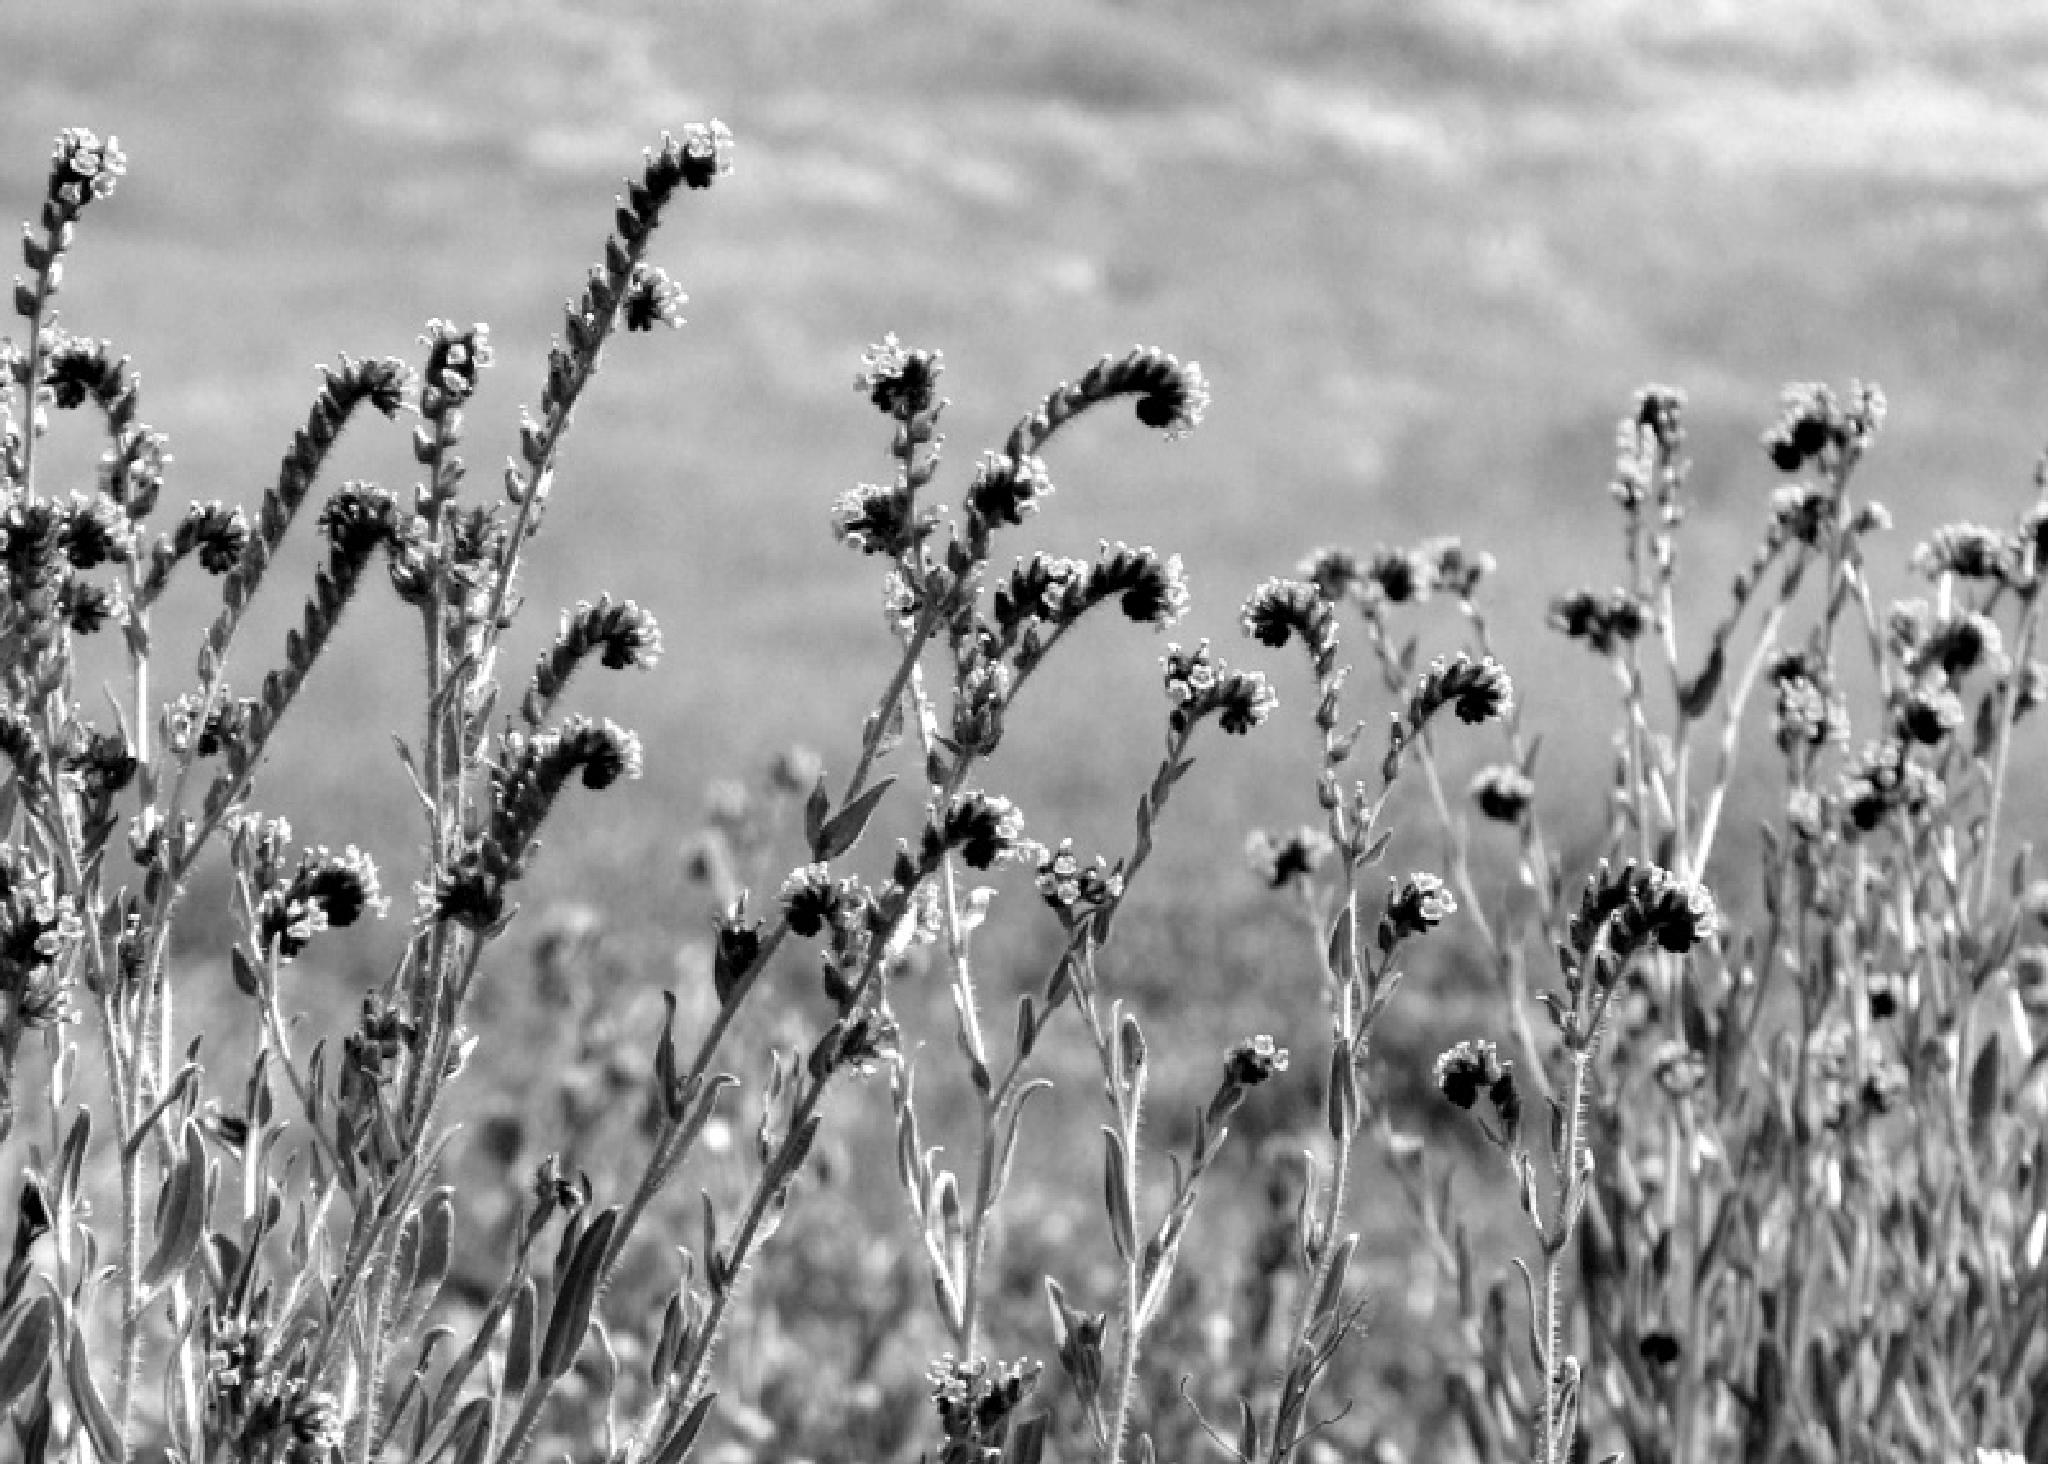 Wildflowers in Black and White by laurieleblancrickaby